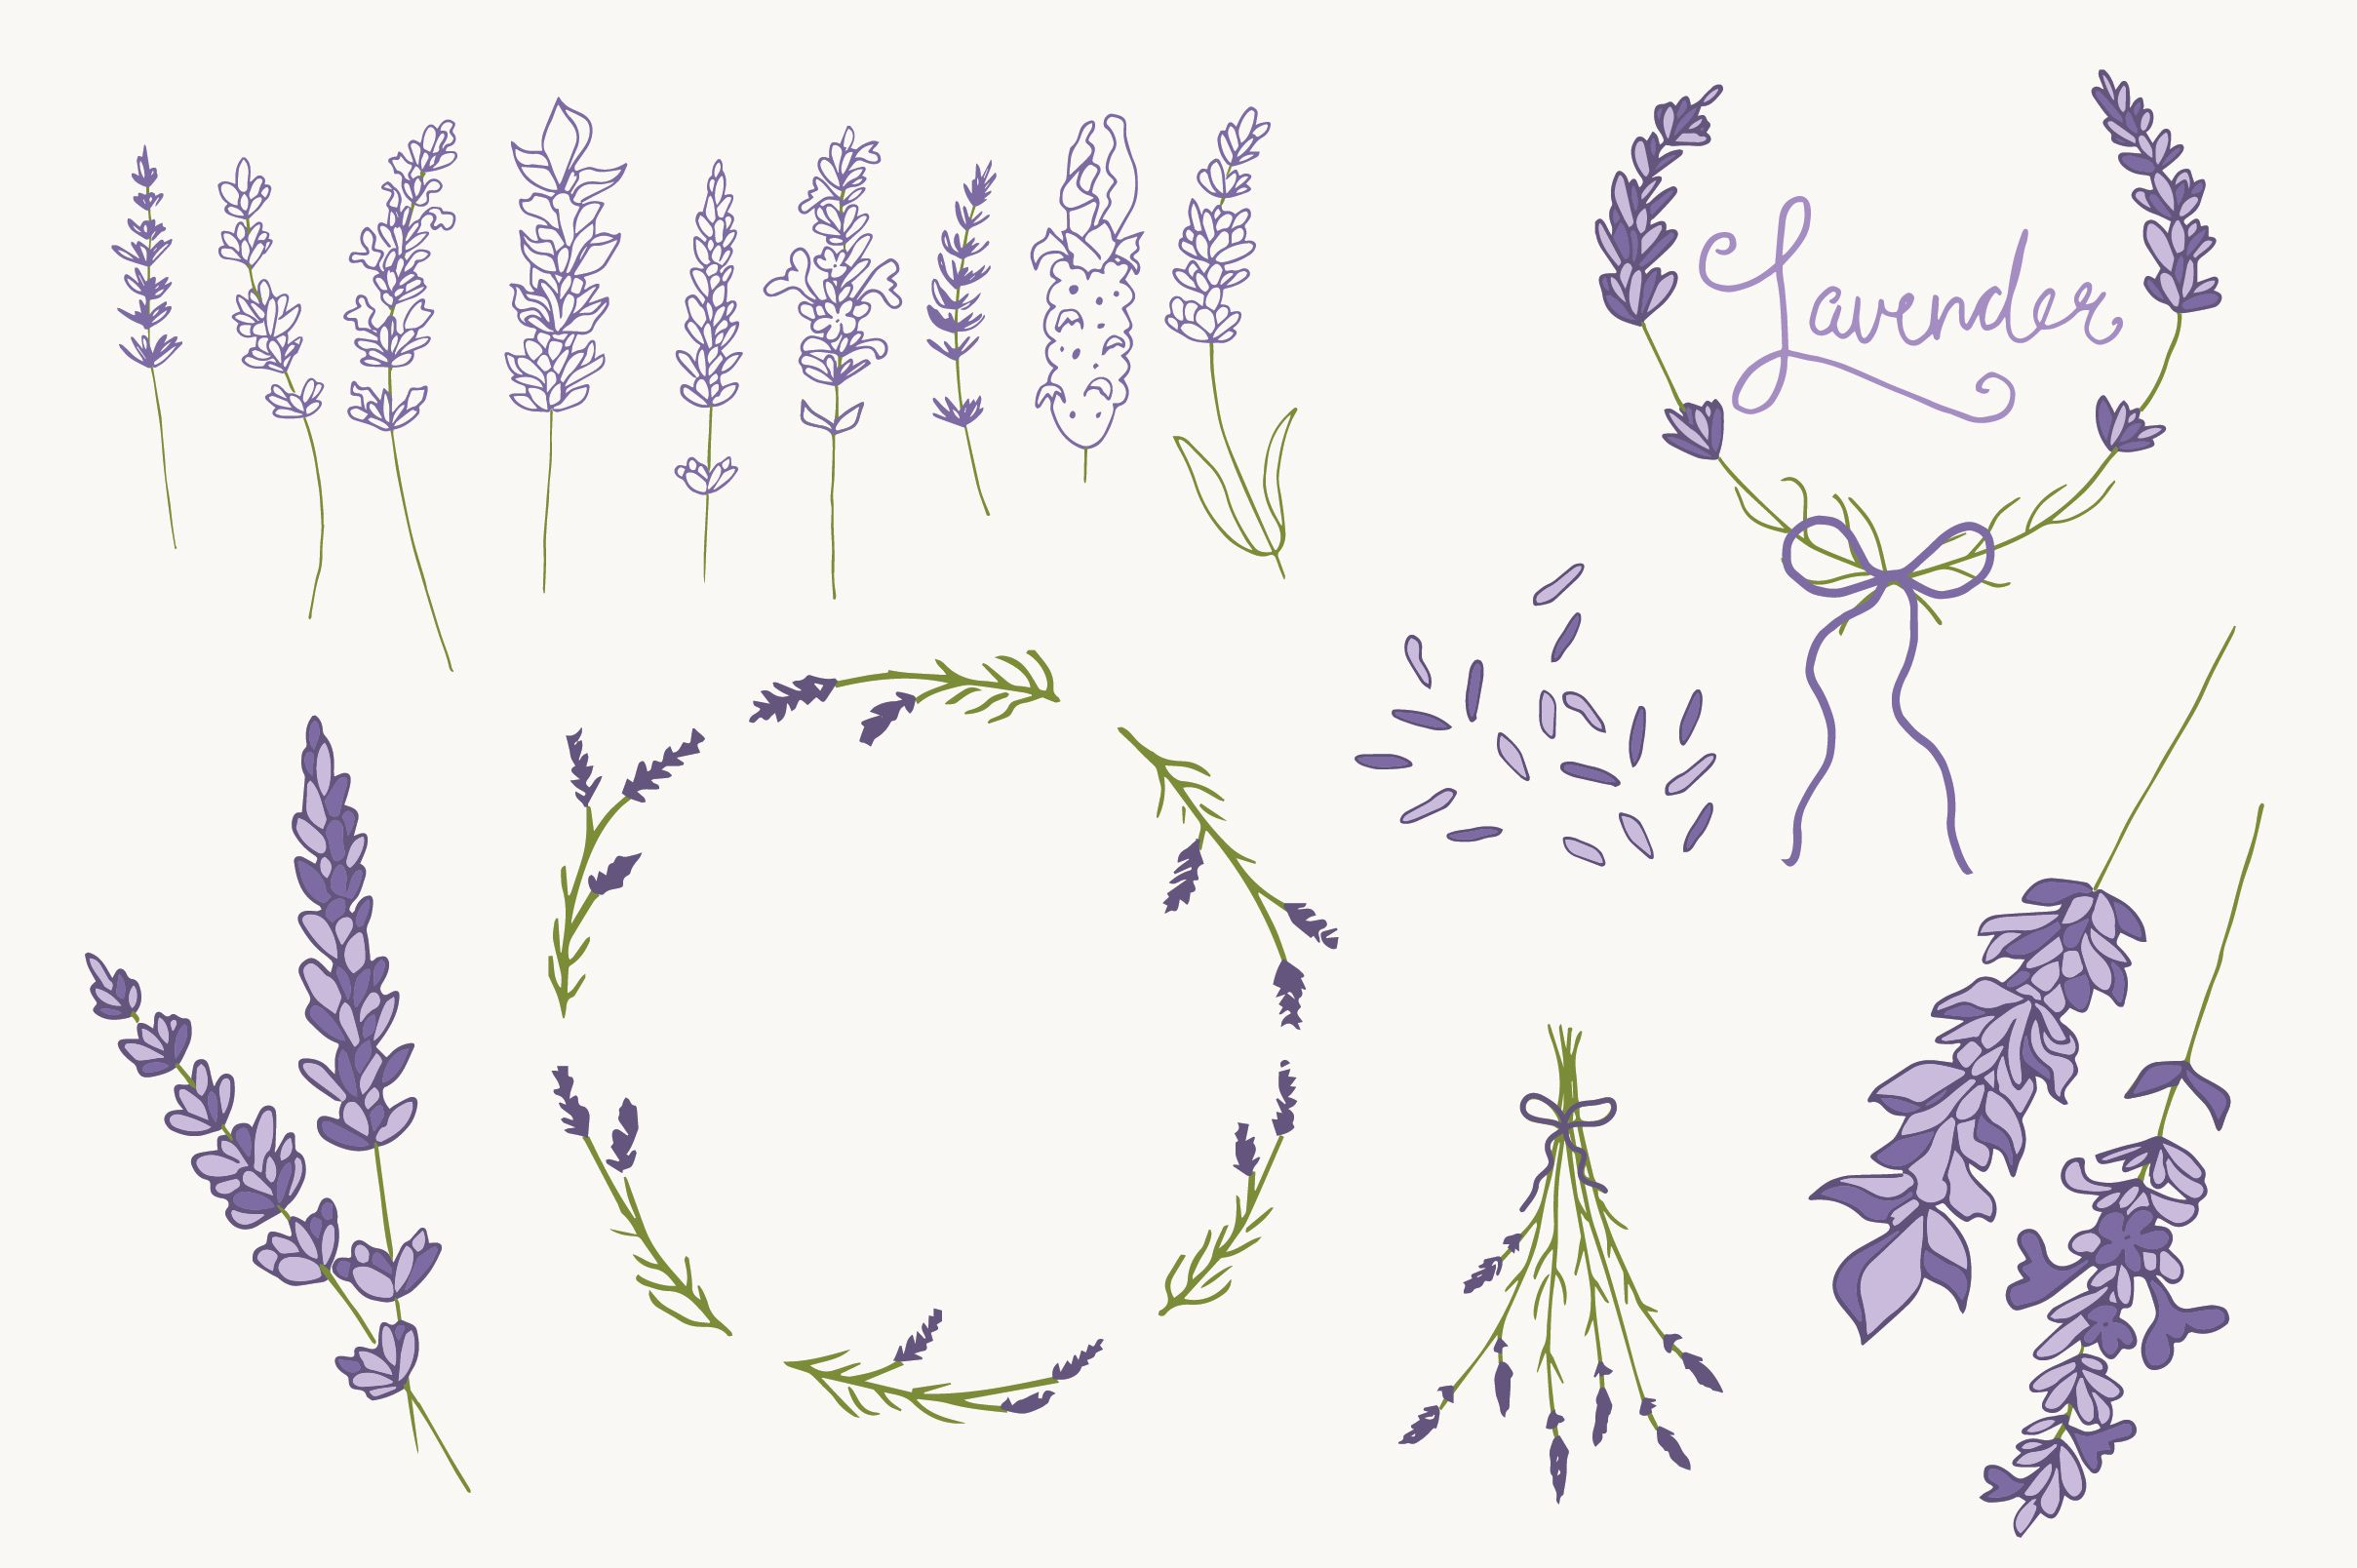 Line Drawing Lavender : Line drawing lavender google search tattoo pinterest